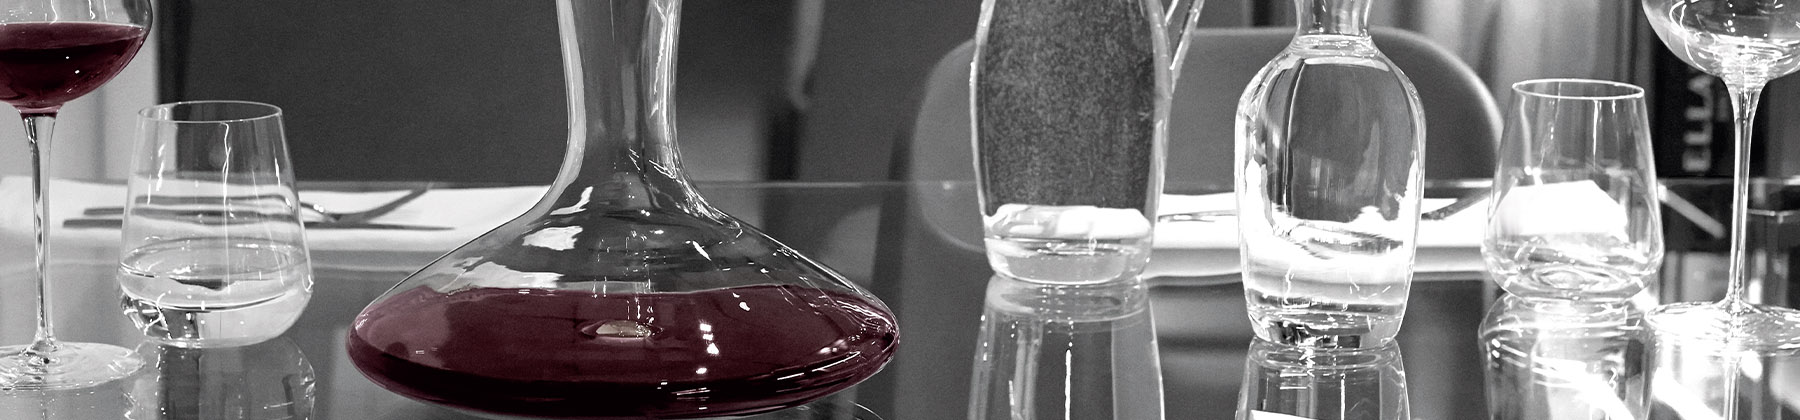 Photo of decanters and carafes.